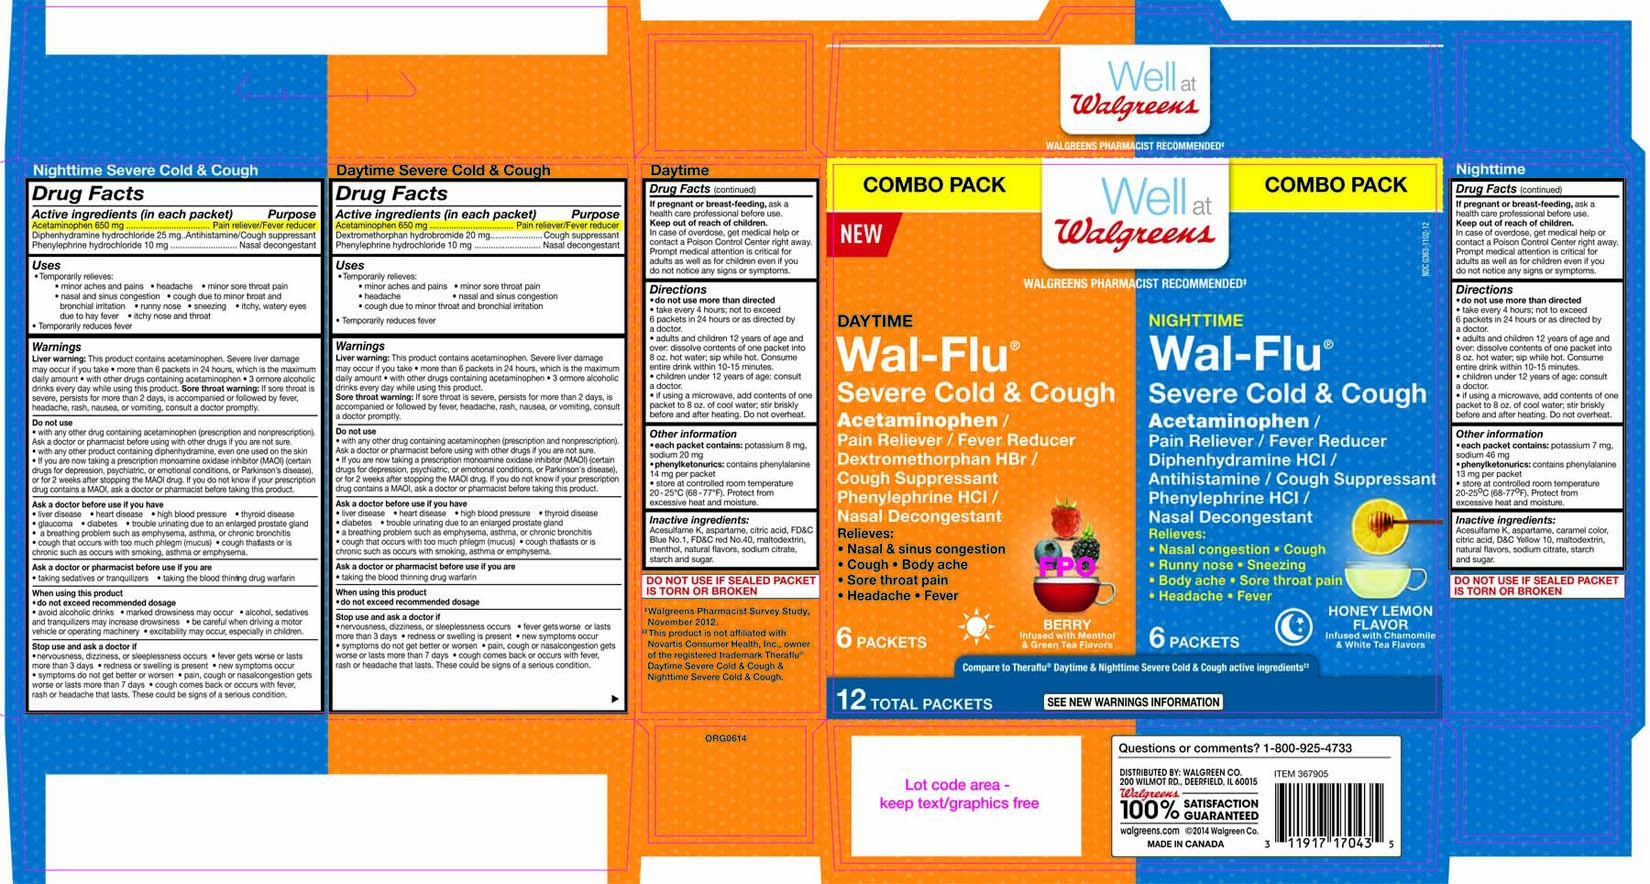 Walgreens Daytime Nighttime Wal-flu Severe Cold And Cough Kit (Acetaminophen, Diphenhydramine Hcl, Phenylephrine Hcl And Dextromethorphan Hbr) Kit [Walgreen Co.]